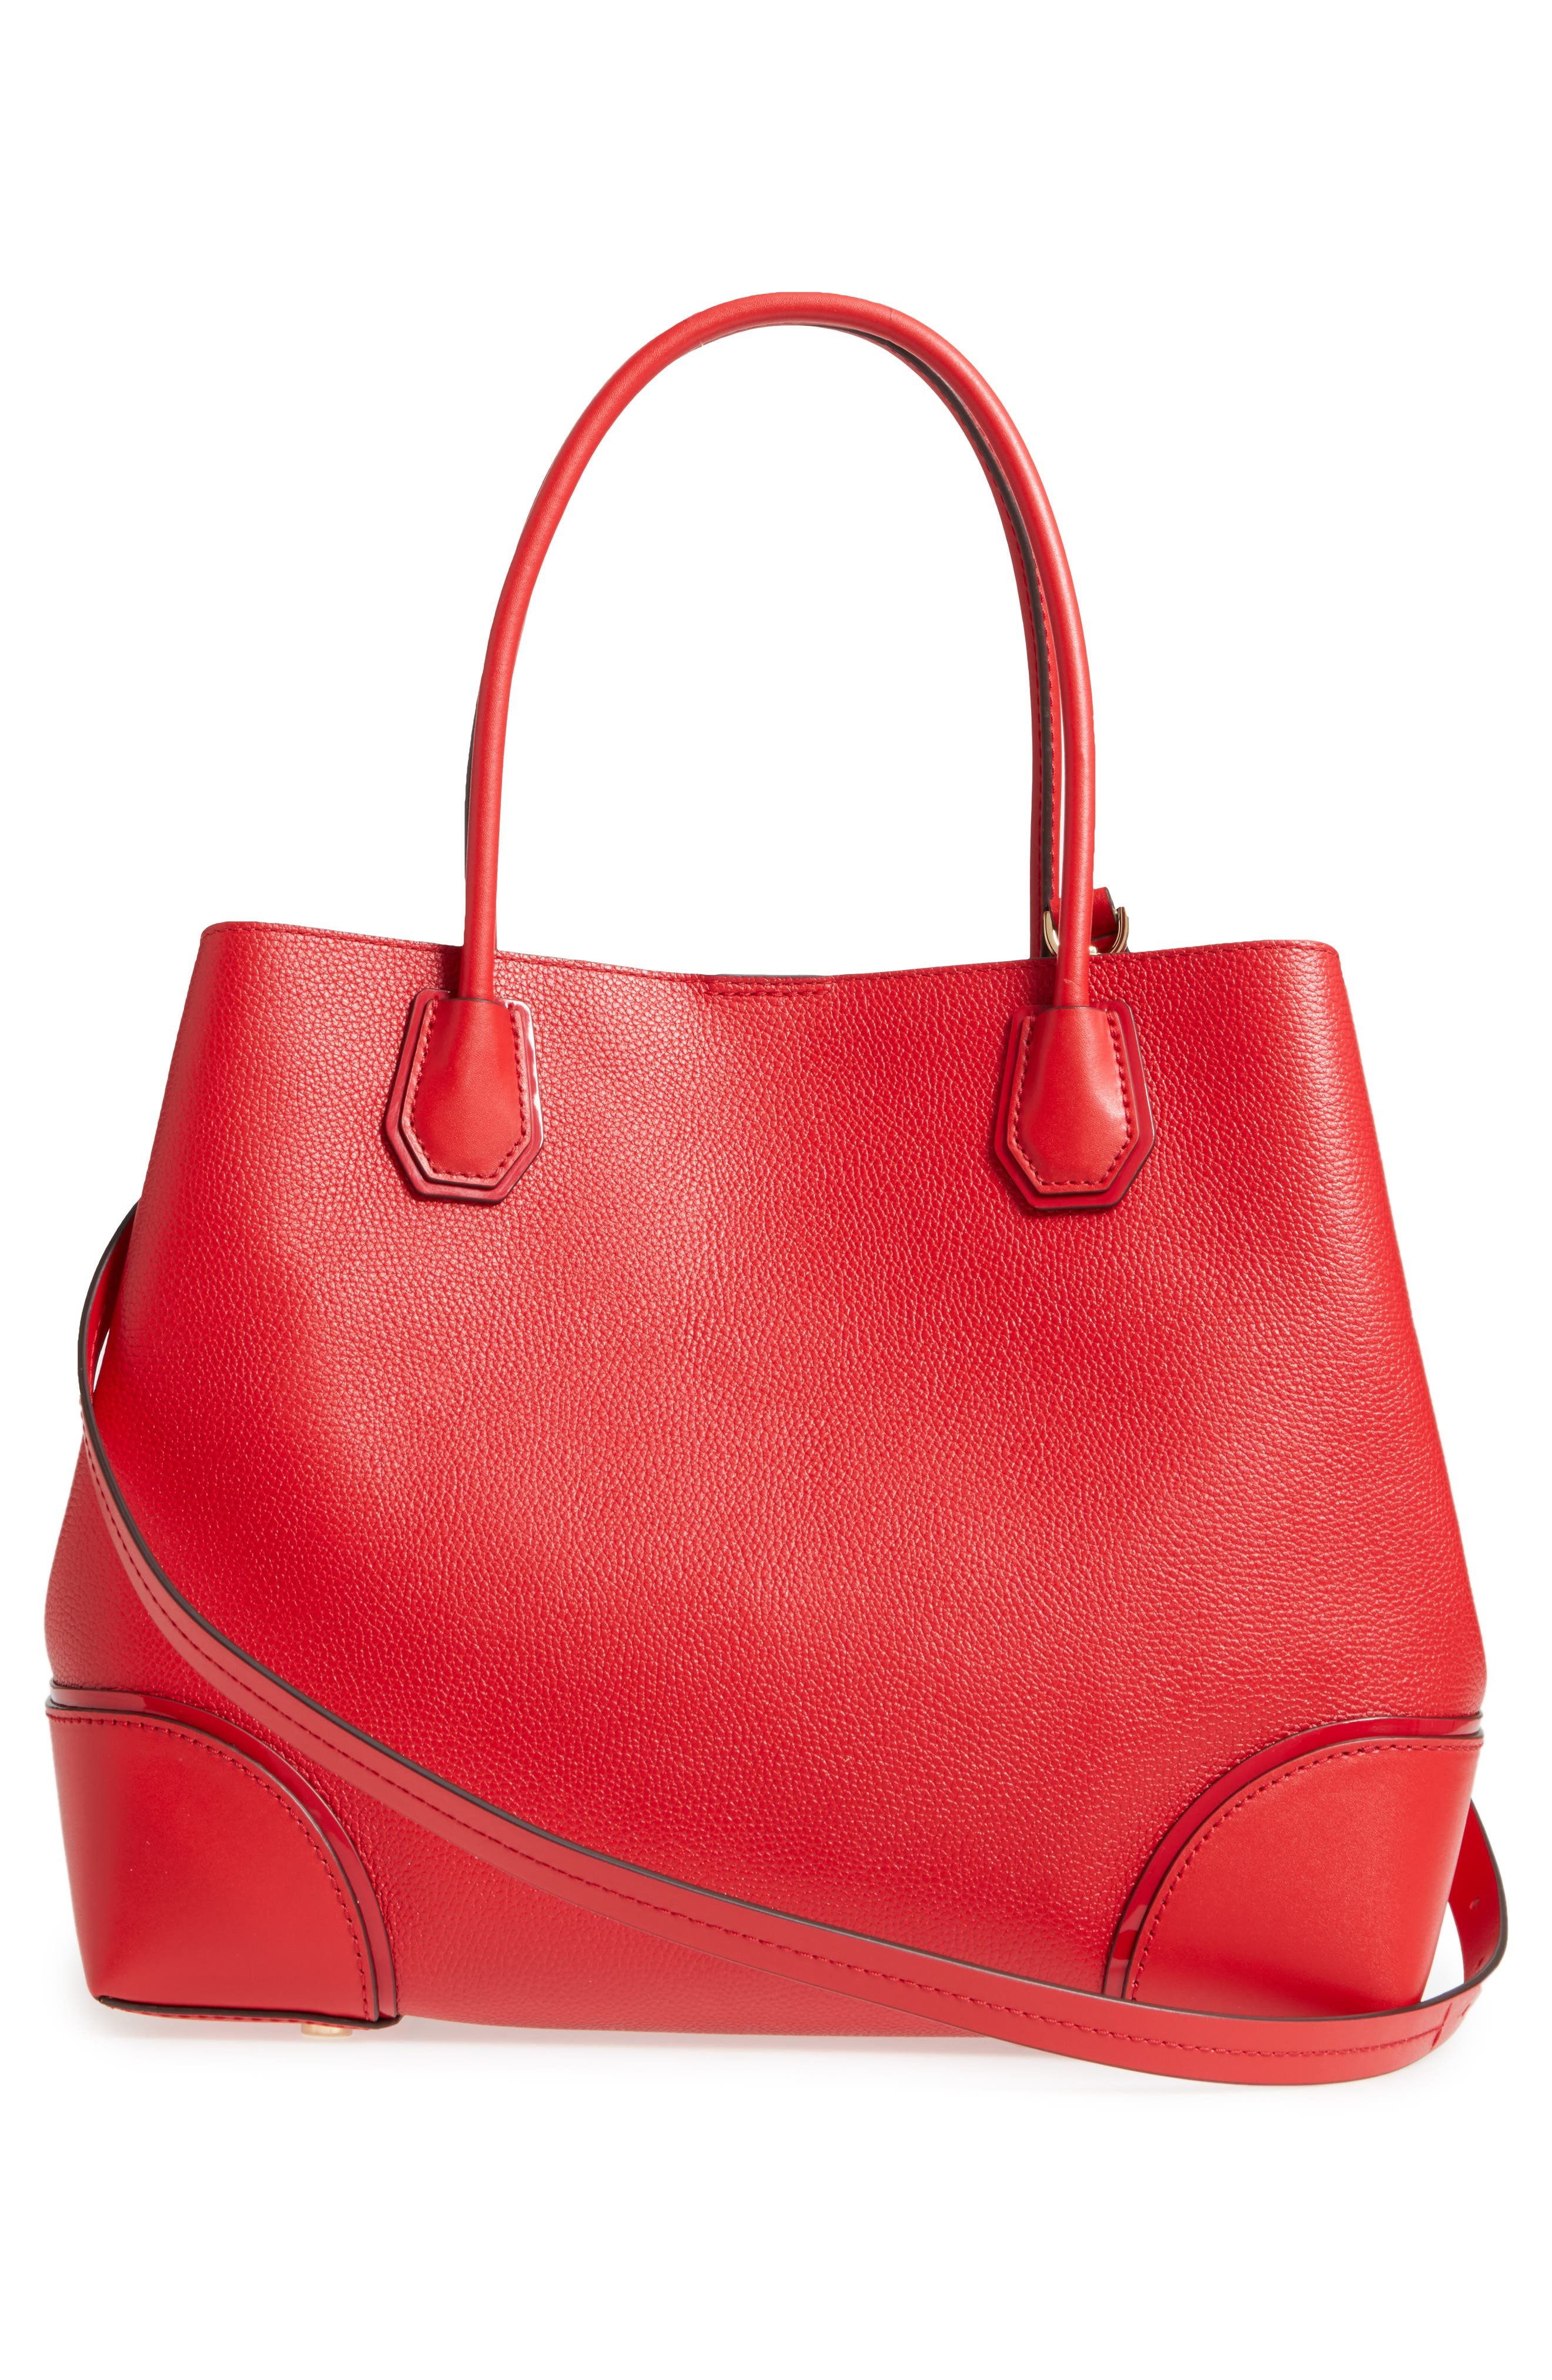 MICHAEL Michael Kors Large Mercer Leather Tote,                             Alternate thumbnail 6, color,                             Bright Red